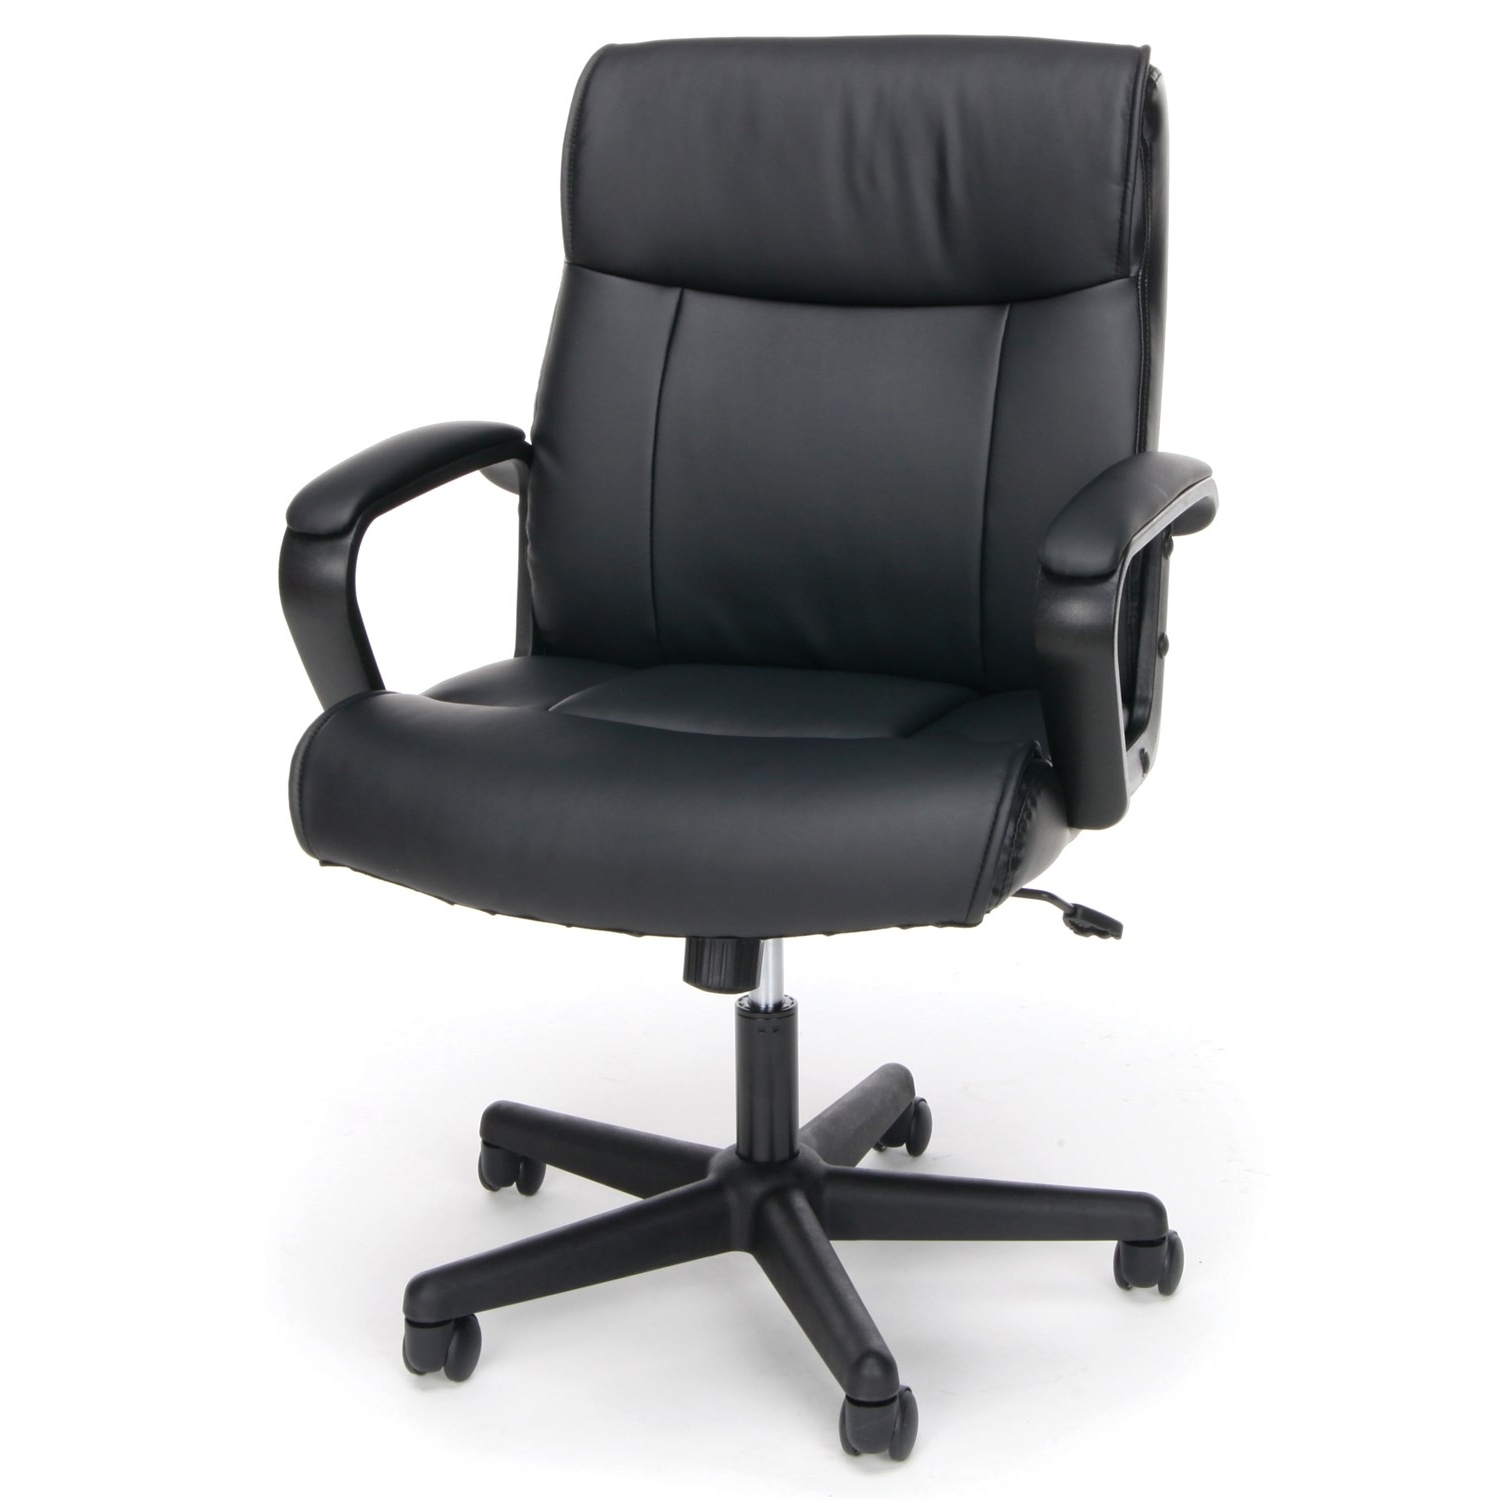 Ofm Ess 6010 Essentials Leather Executive Office Chair In Black Pertaining To Most Recent Black Executive Office Chairs (View 20 of 20)